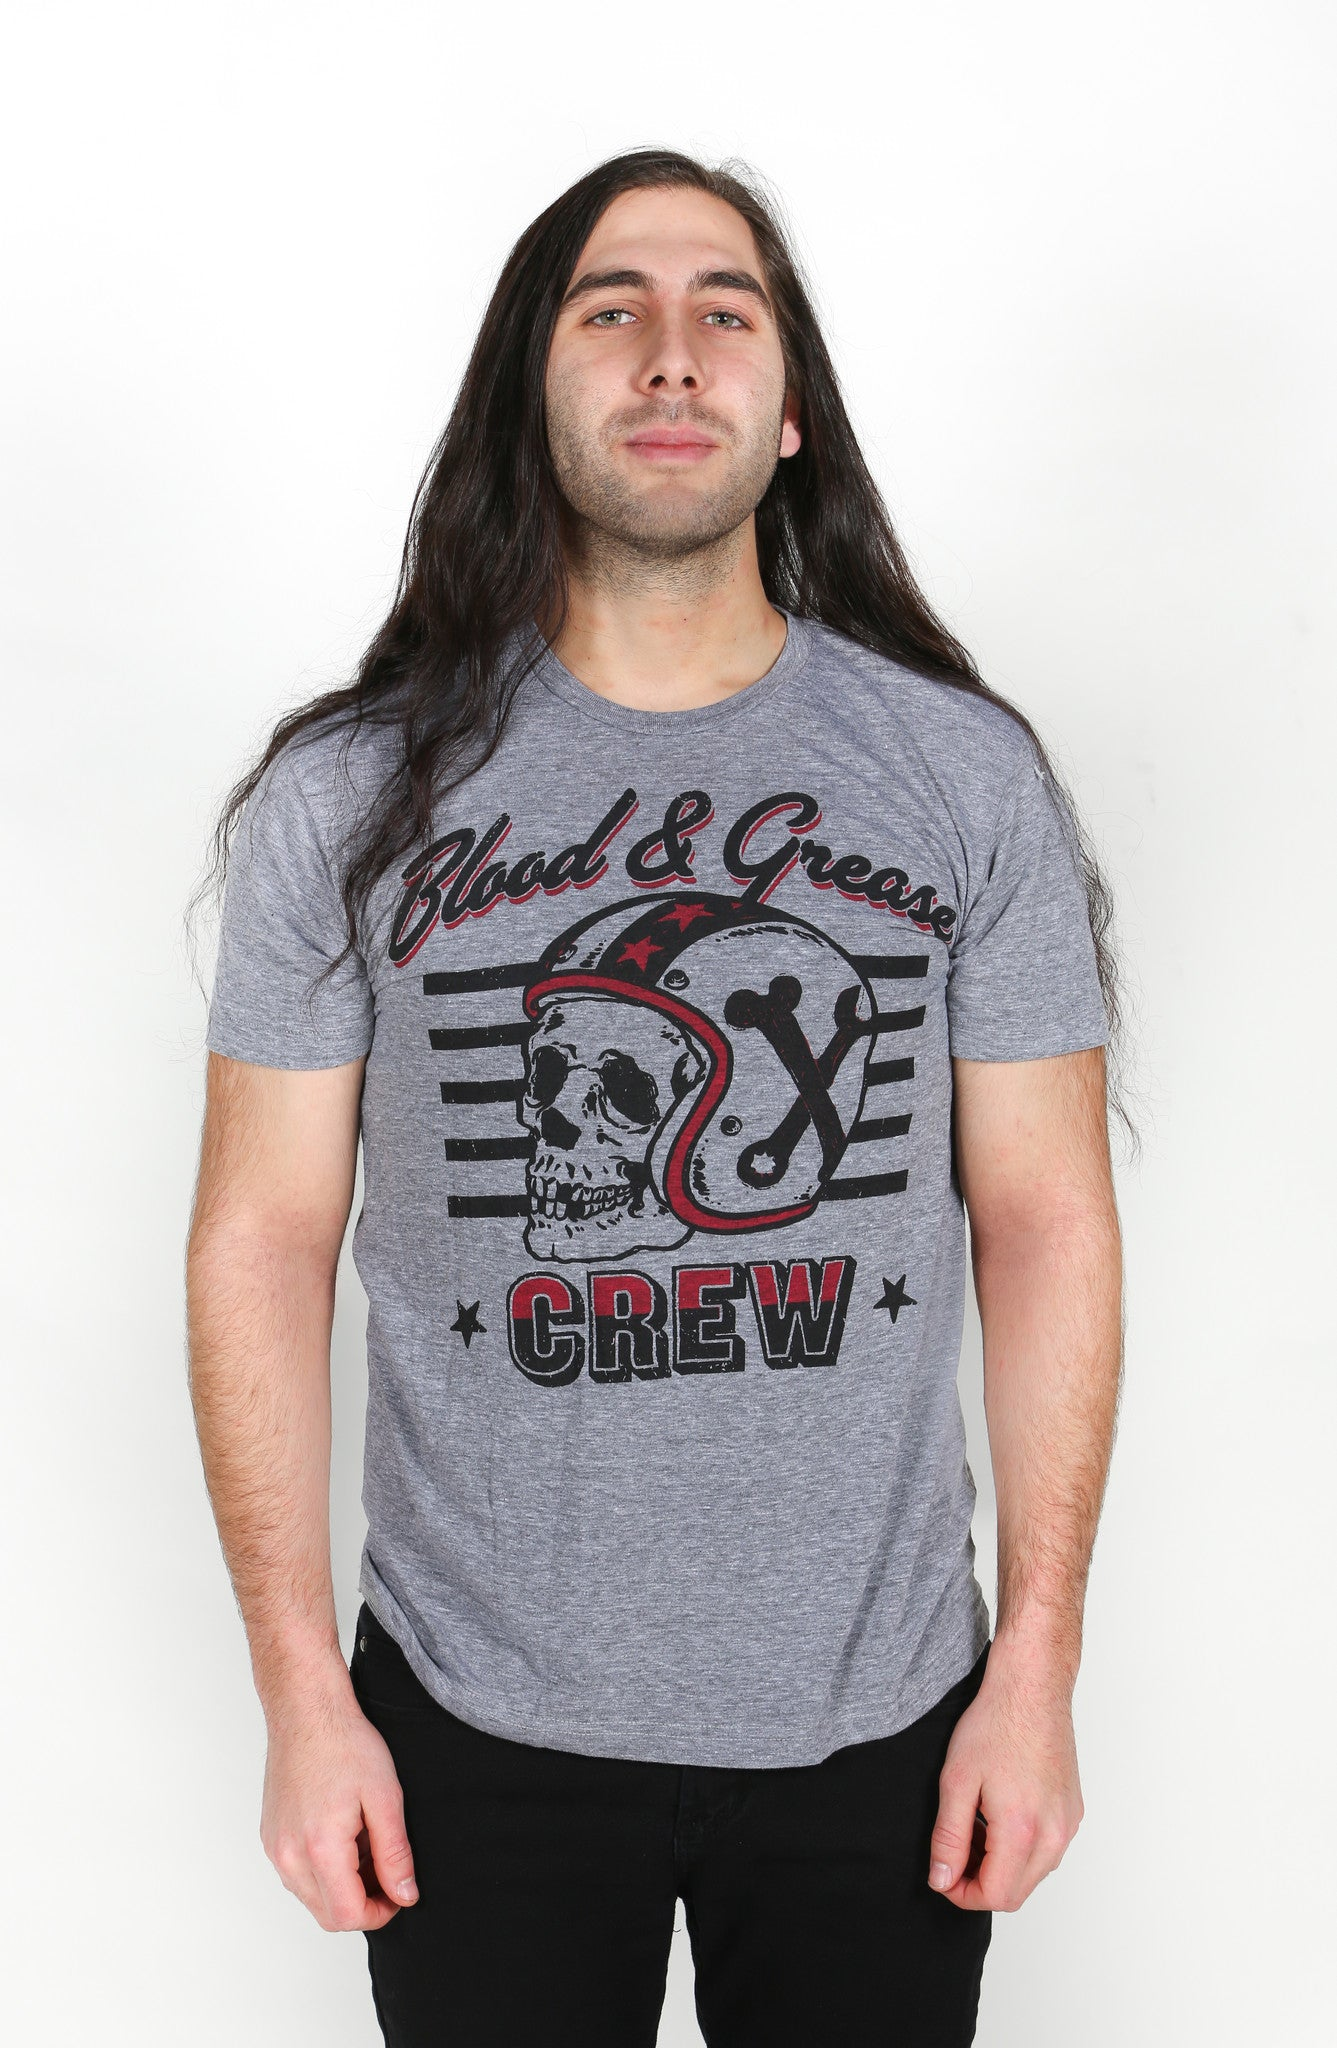 B&G CREW (Tri-blend: Athletic Grey)